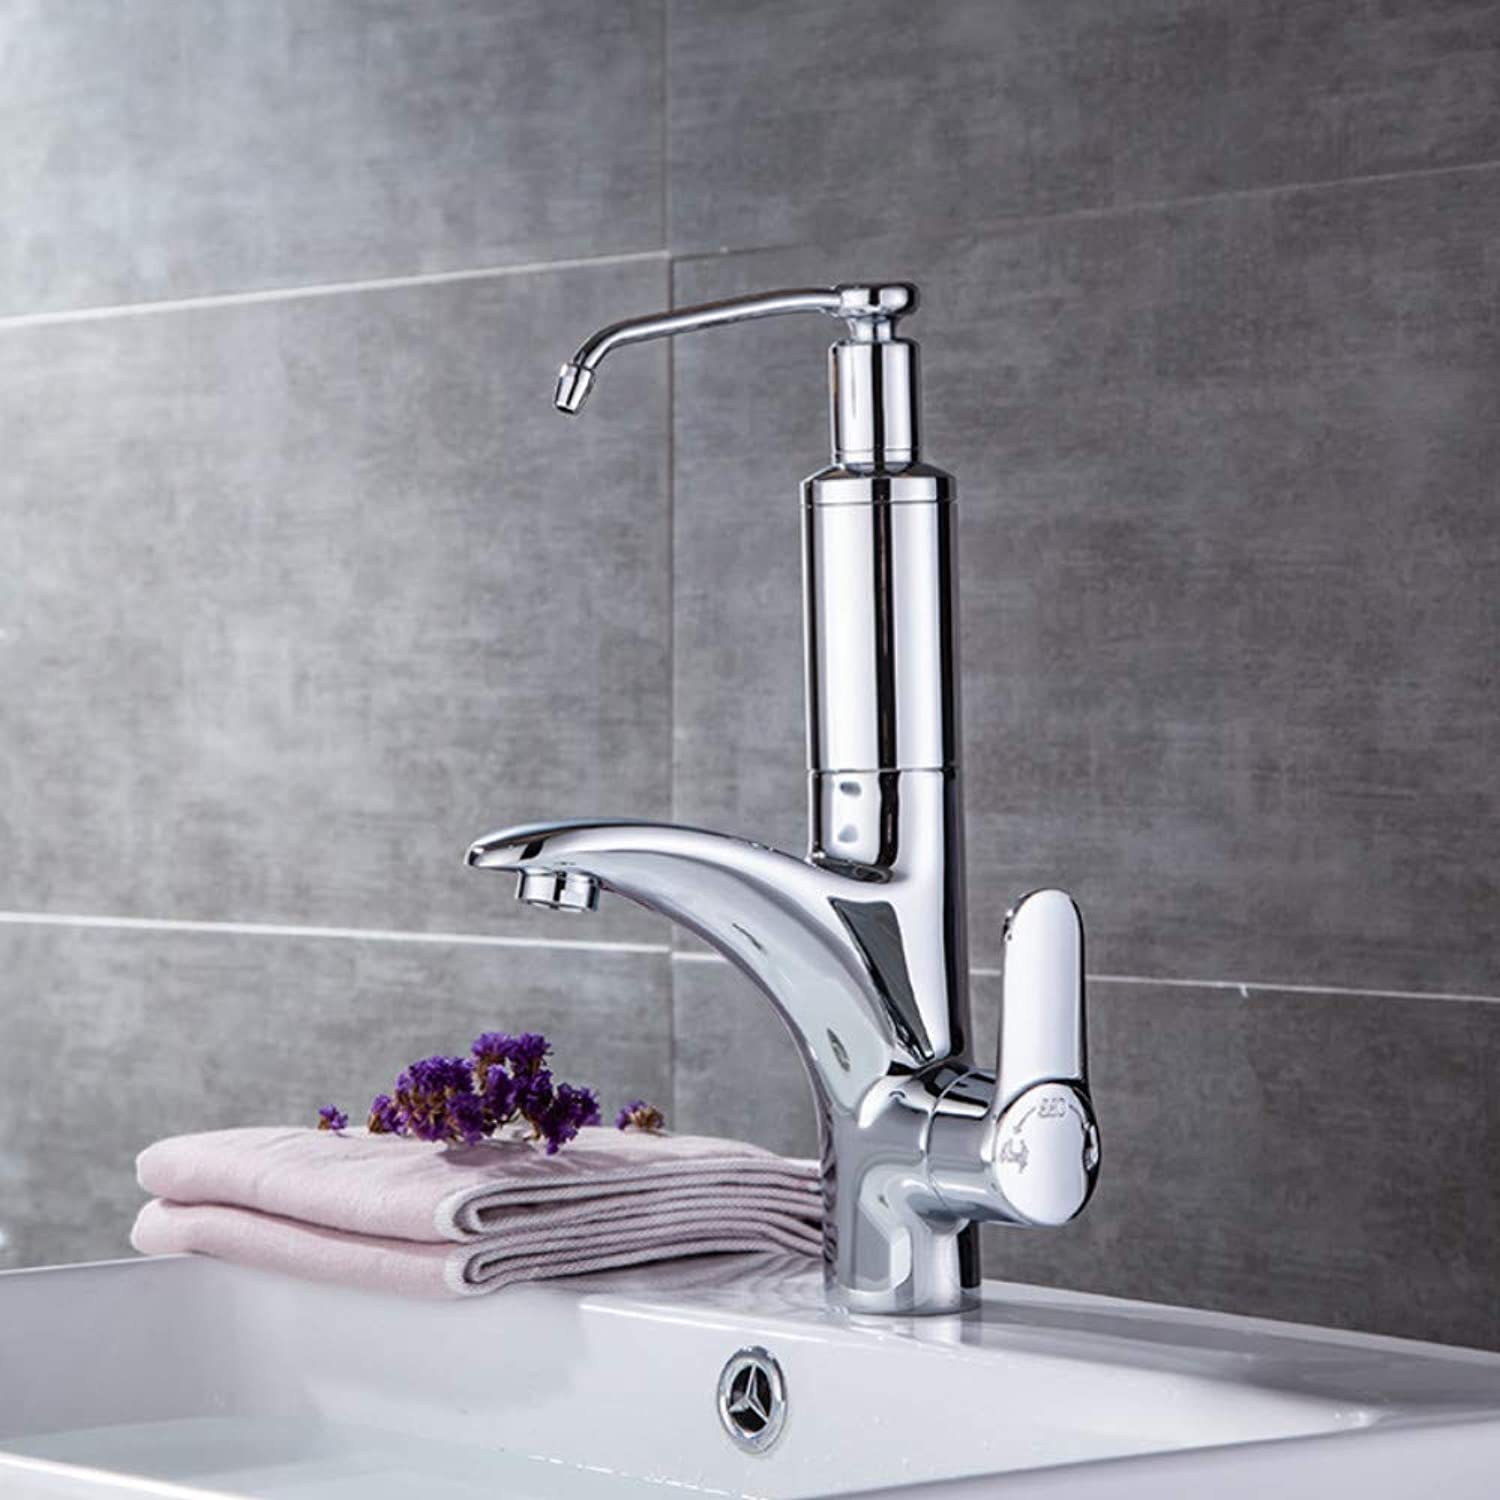 Ayhuir Bathroom Chrome Brass Kitchen Faucet Hot and Cold Water Water Purification Single Hole High Quality Wash Basin Faucet